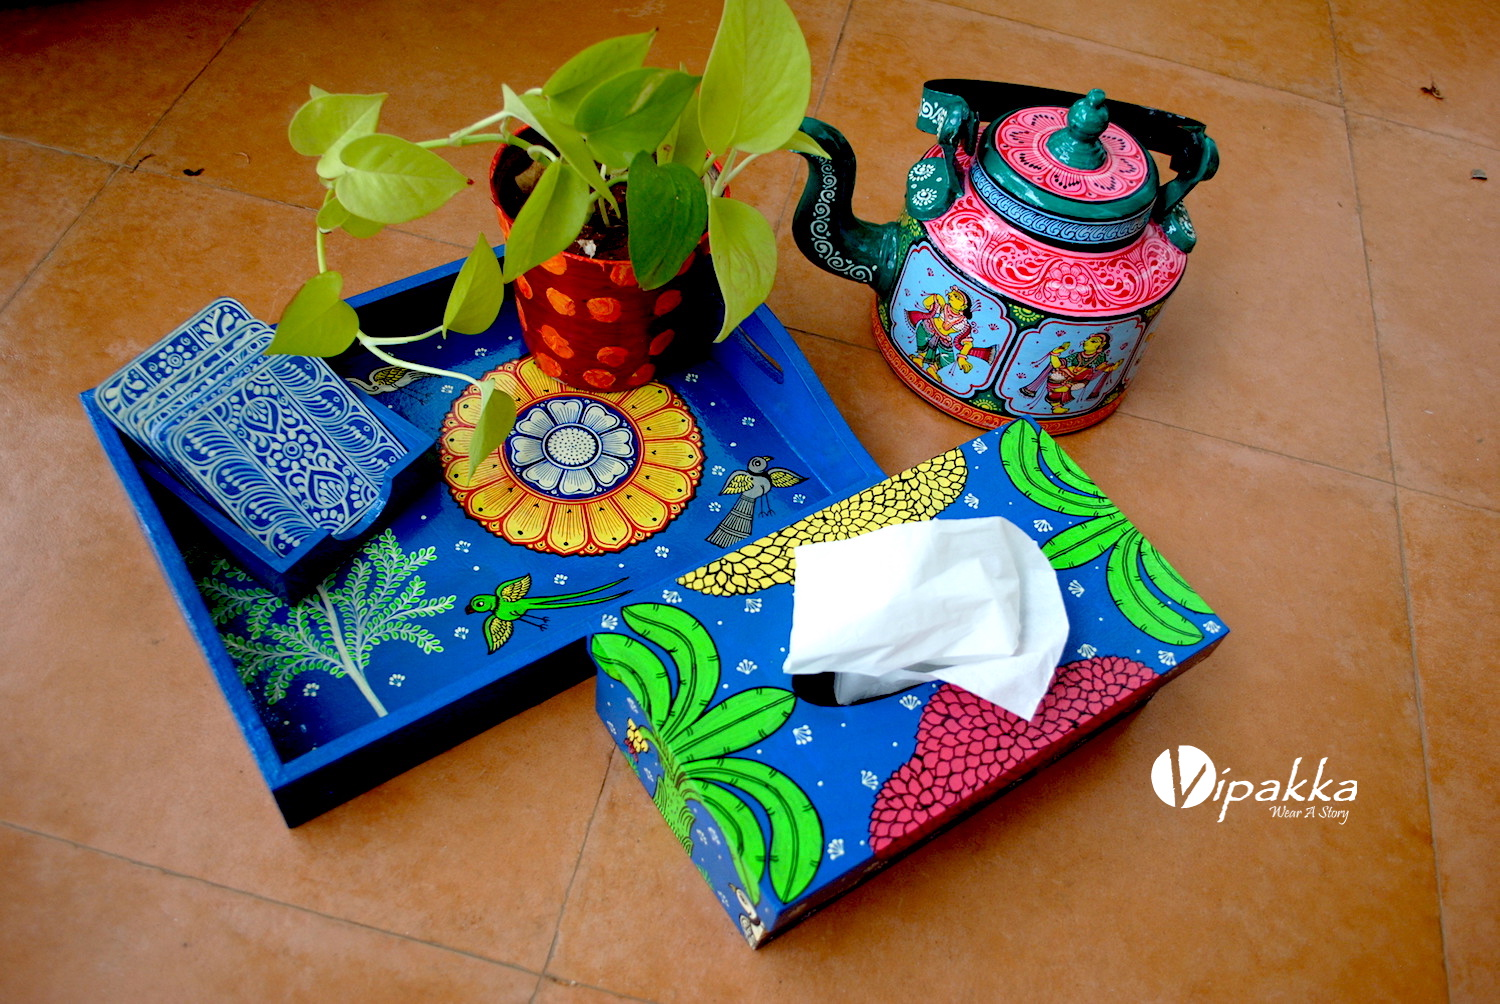 Vipakka-gifting-combo-4 Top 6 Gift Ideas To Make This Diwali Special